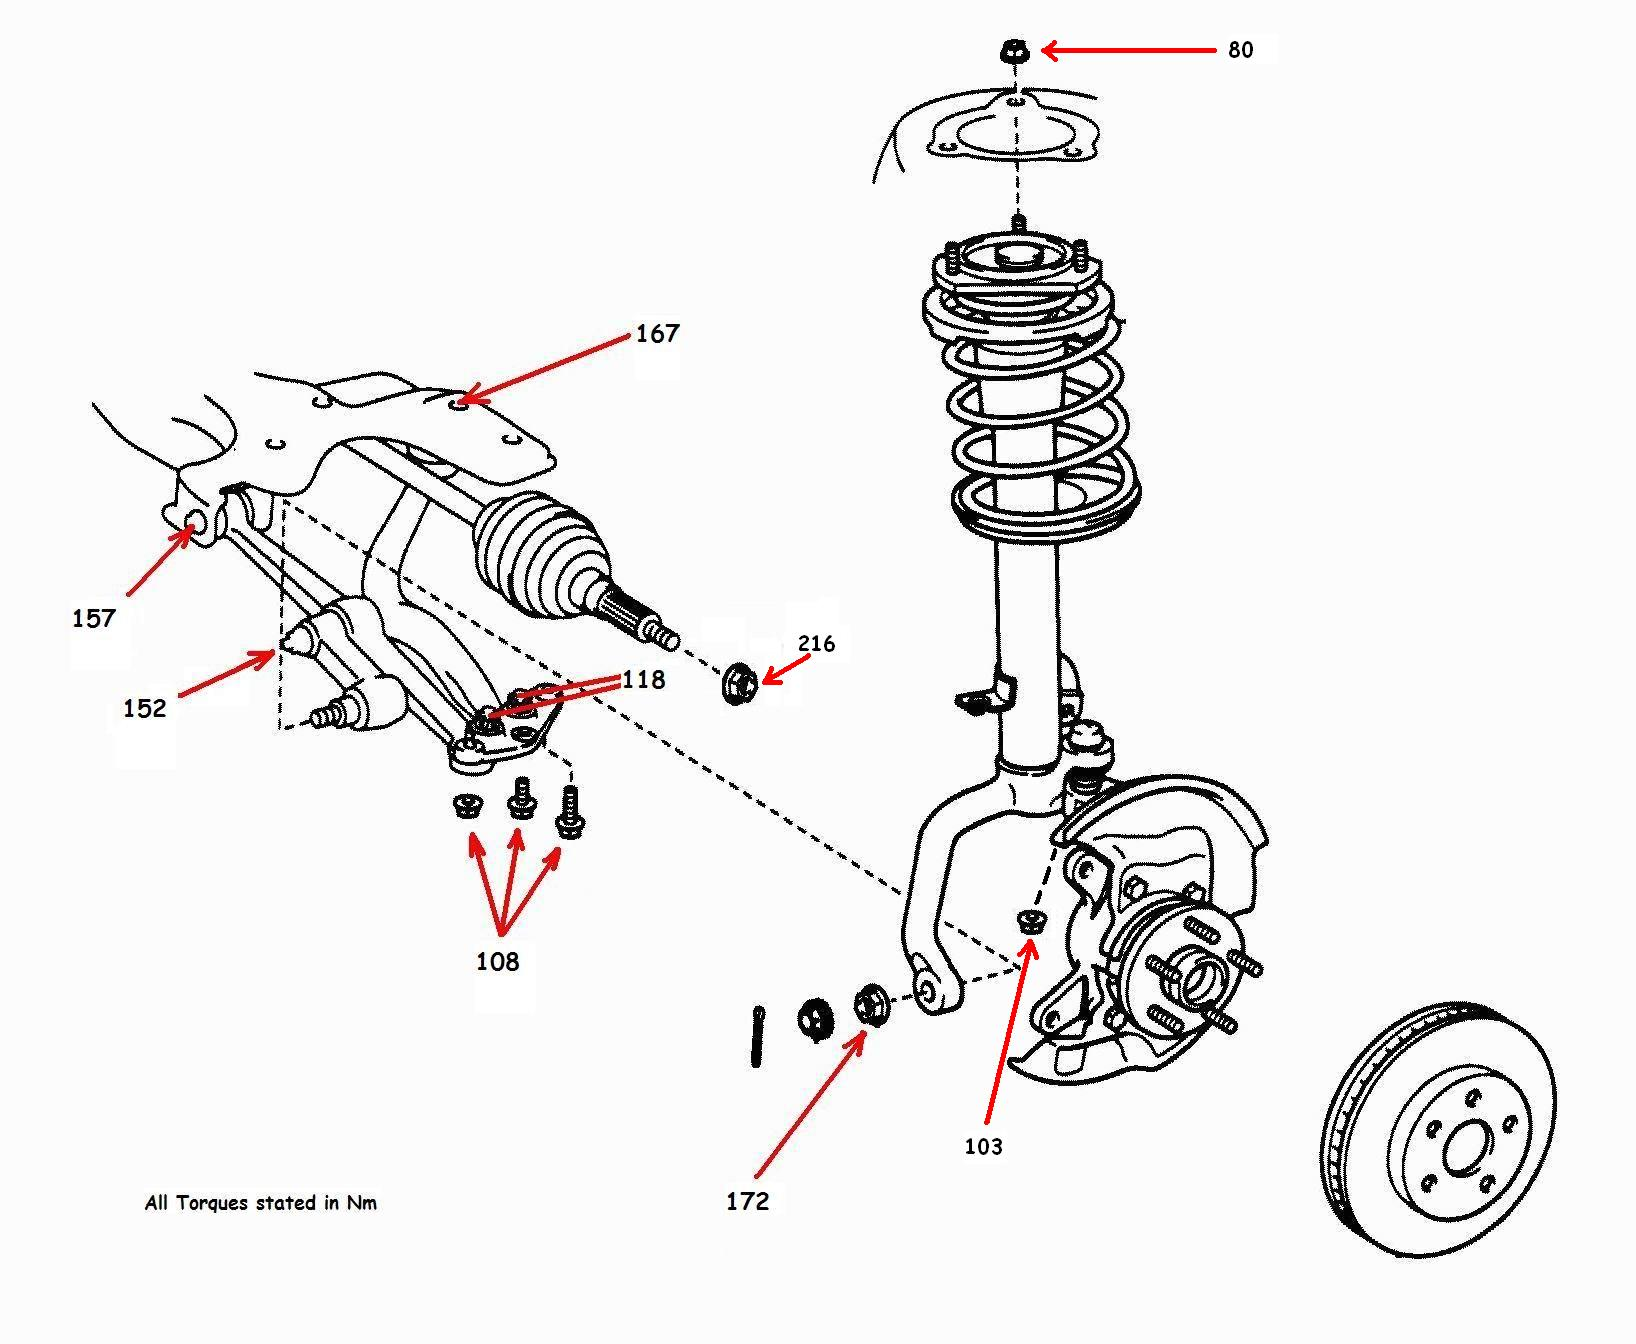 How To Change A Toyota Celica Gt4 St205 Front Driveshaft